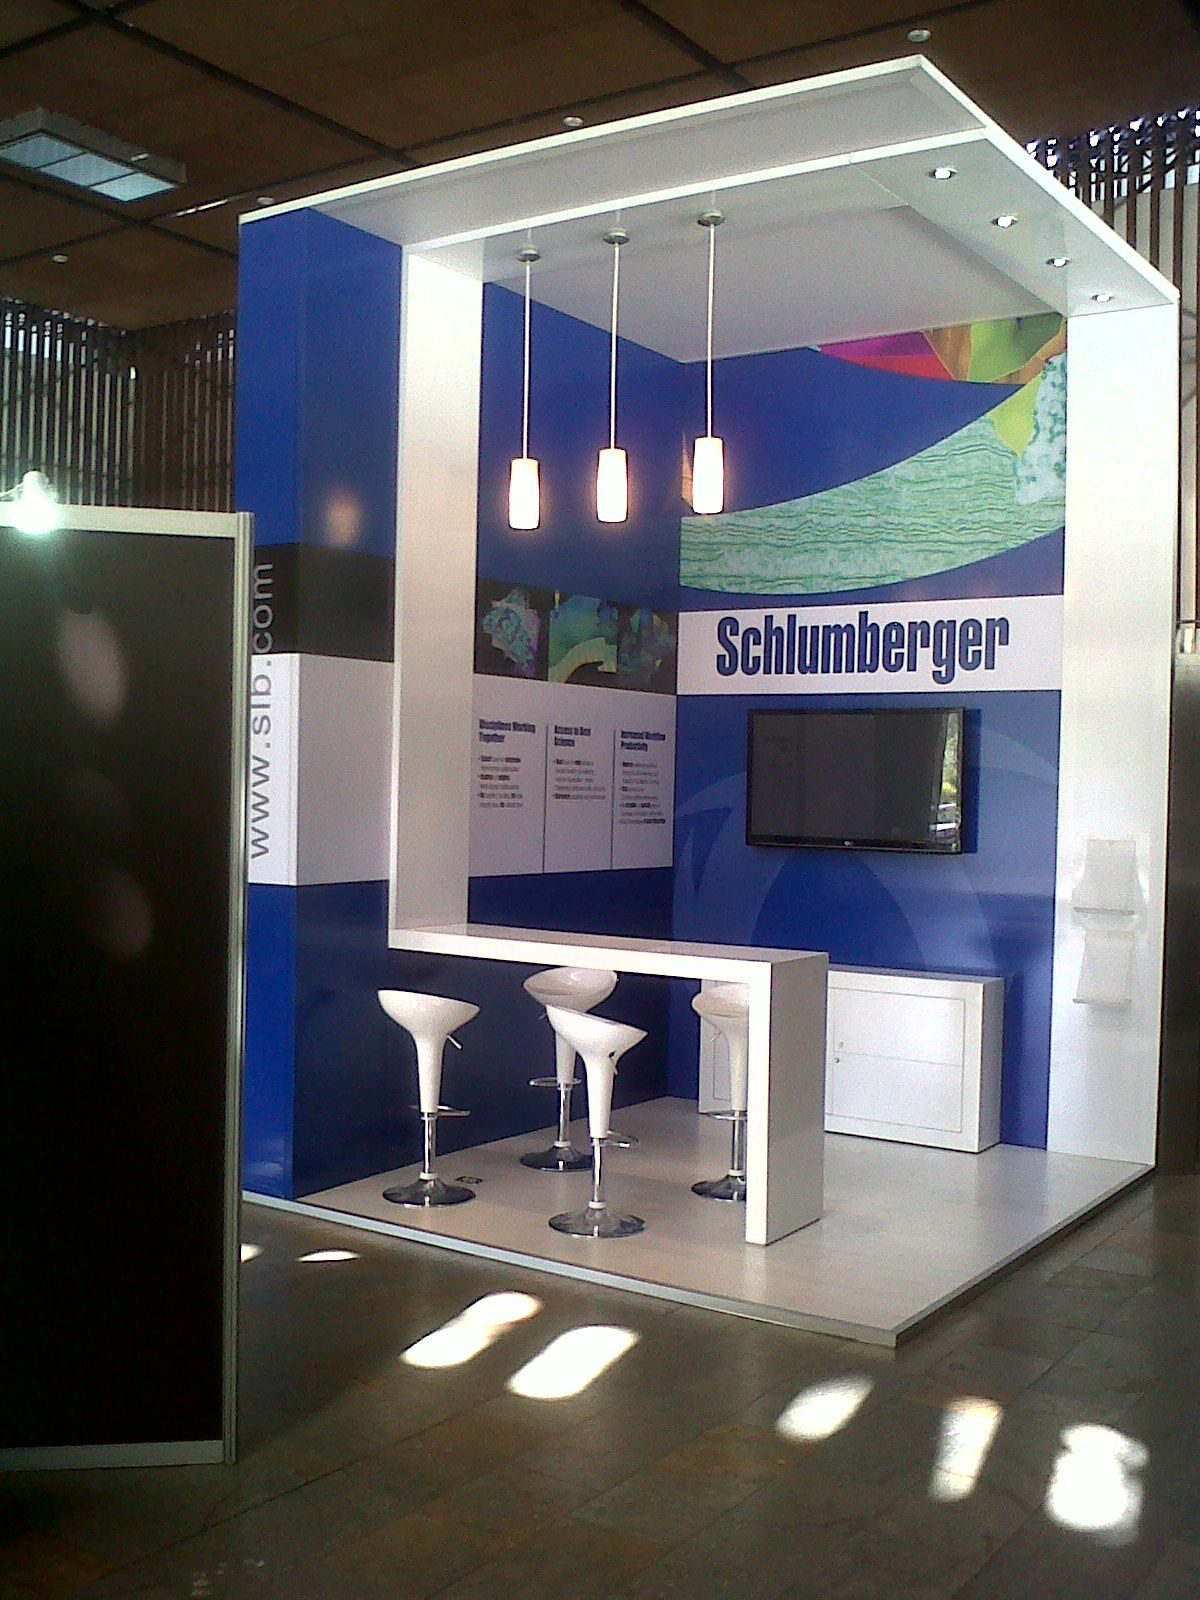 D Exhibition Stall Designer Jobs In Dubai : Schlumberger stand by jorge cortés at coroflot